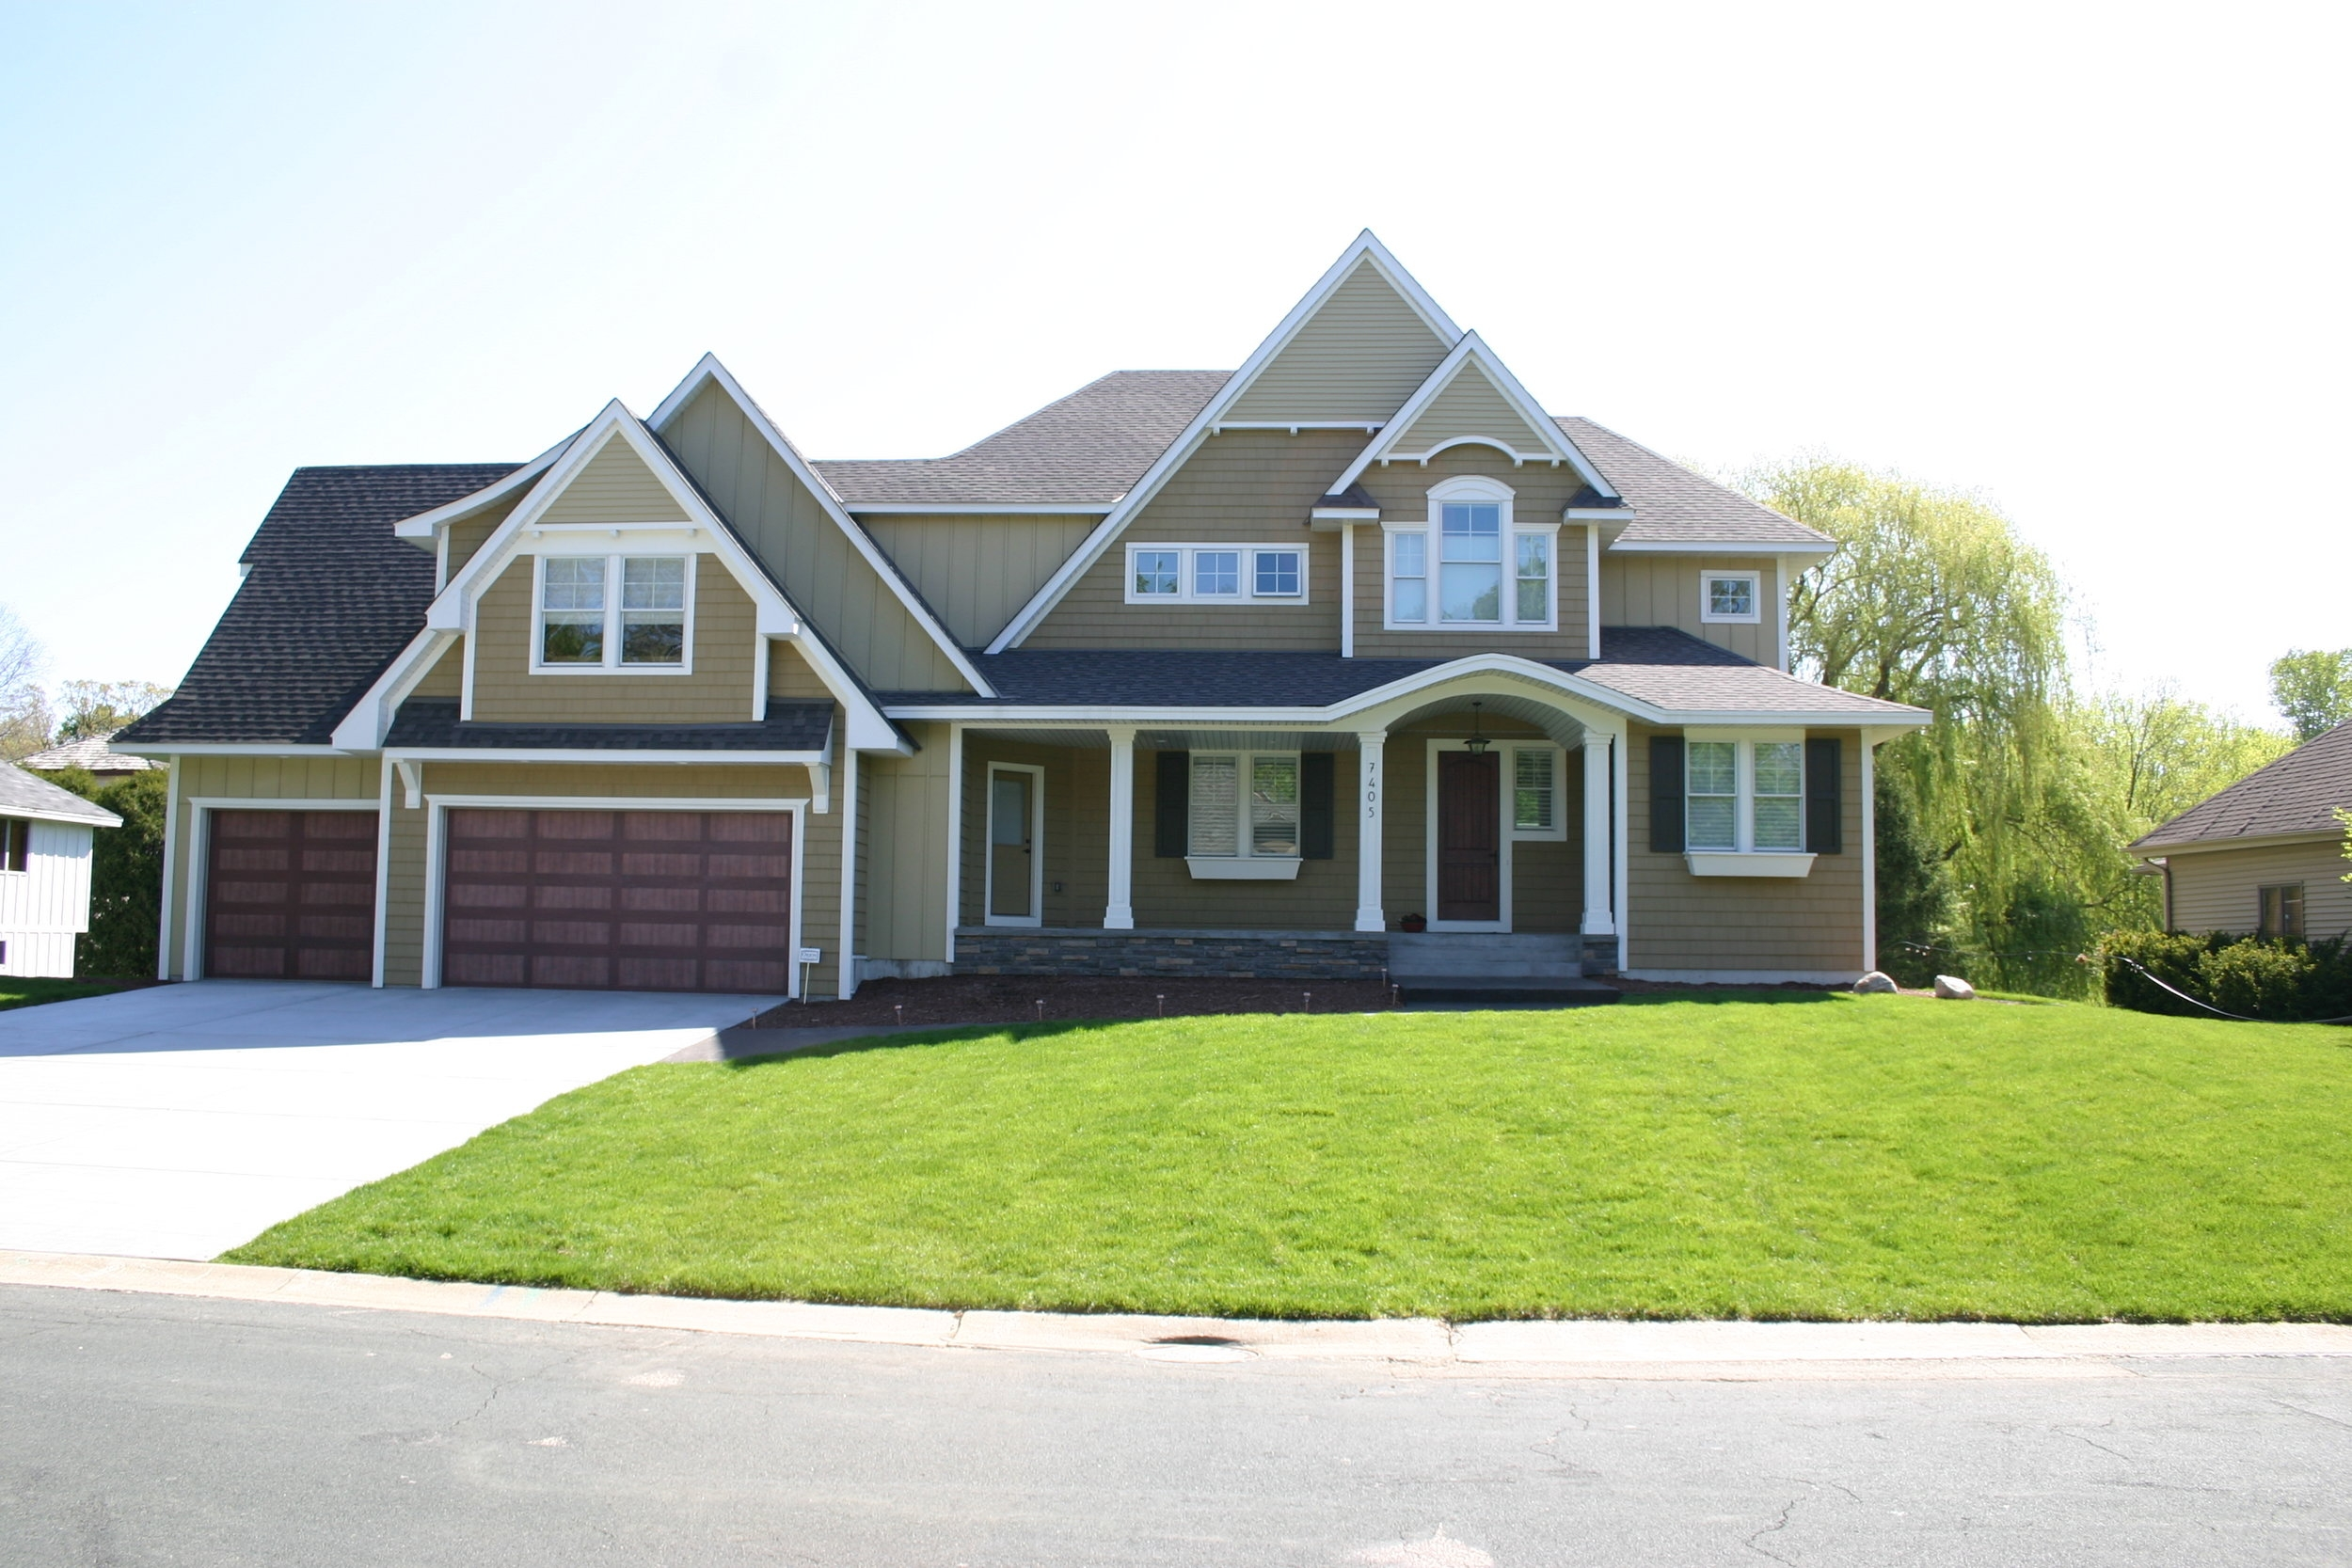 Before: Without any landscaping, this suburban home is adrift in endless turfgrass.